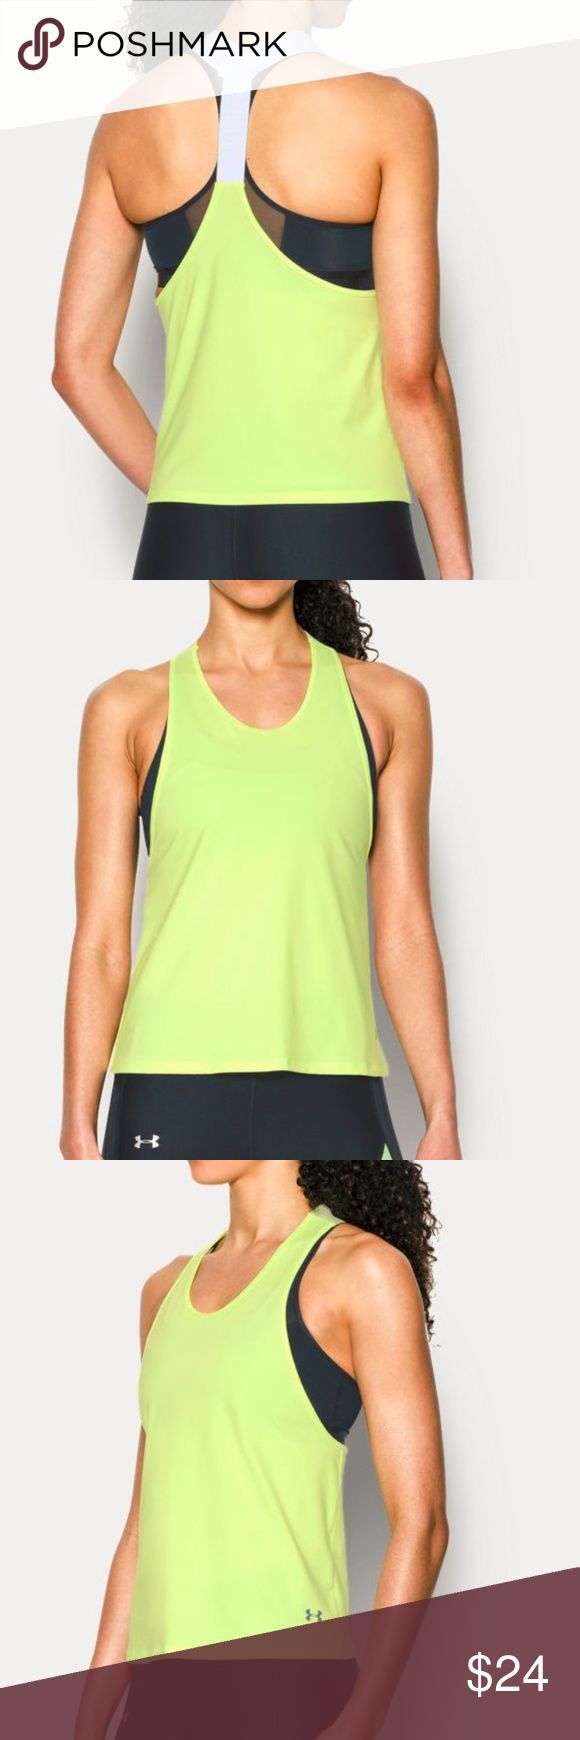 Under Armour Sport Swing Tank NEW Loose: Generous, more relaxed fit. Soft & super-smooth anti-pick, anti-pill fabric delivers relentless durability & style Material wicks sweat & dries really fast 4-way stretch construction moves better in every direction Anti-odor technology prevents the growth of odor-causing microbes Exposed elastic word mark strap detail Generous, oversized fit with dropped armholes for layering Slightly shaped hem 88% Polyester/12% Elastane Imported Under Armour Tops…